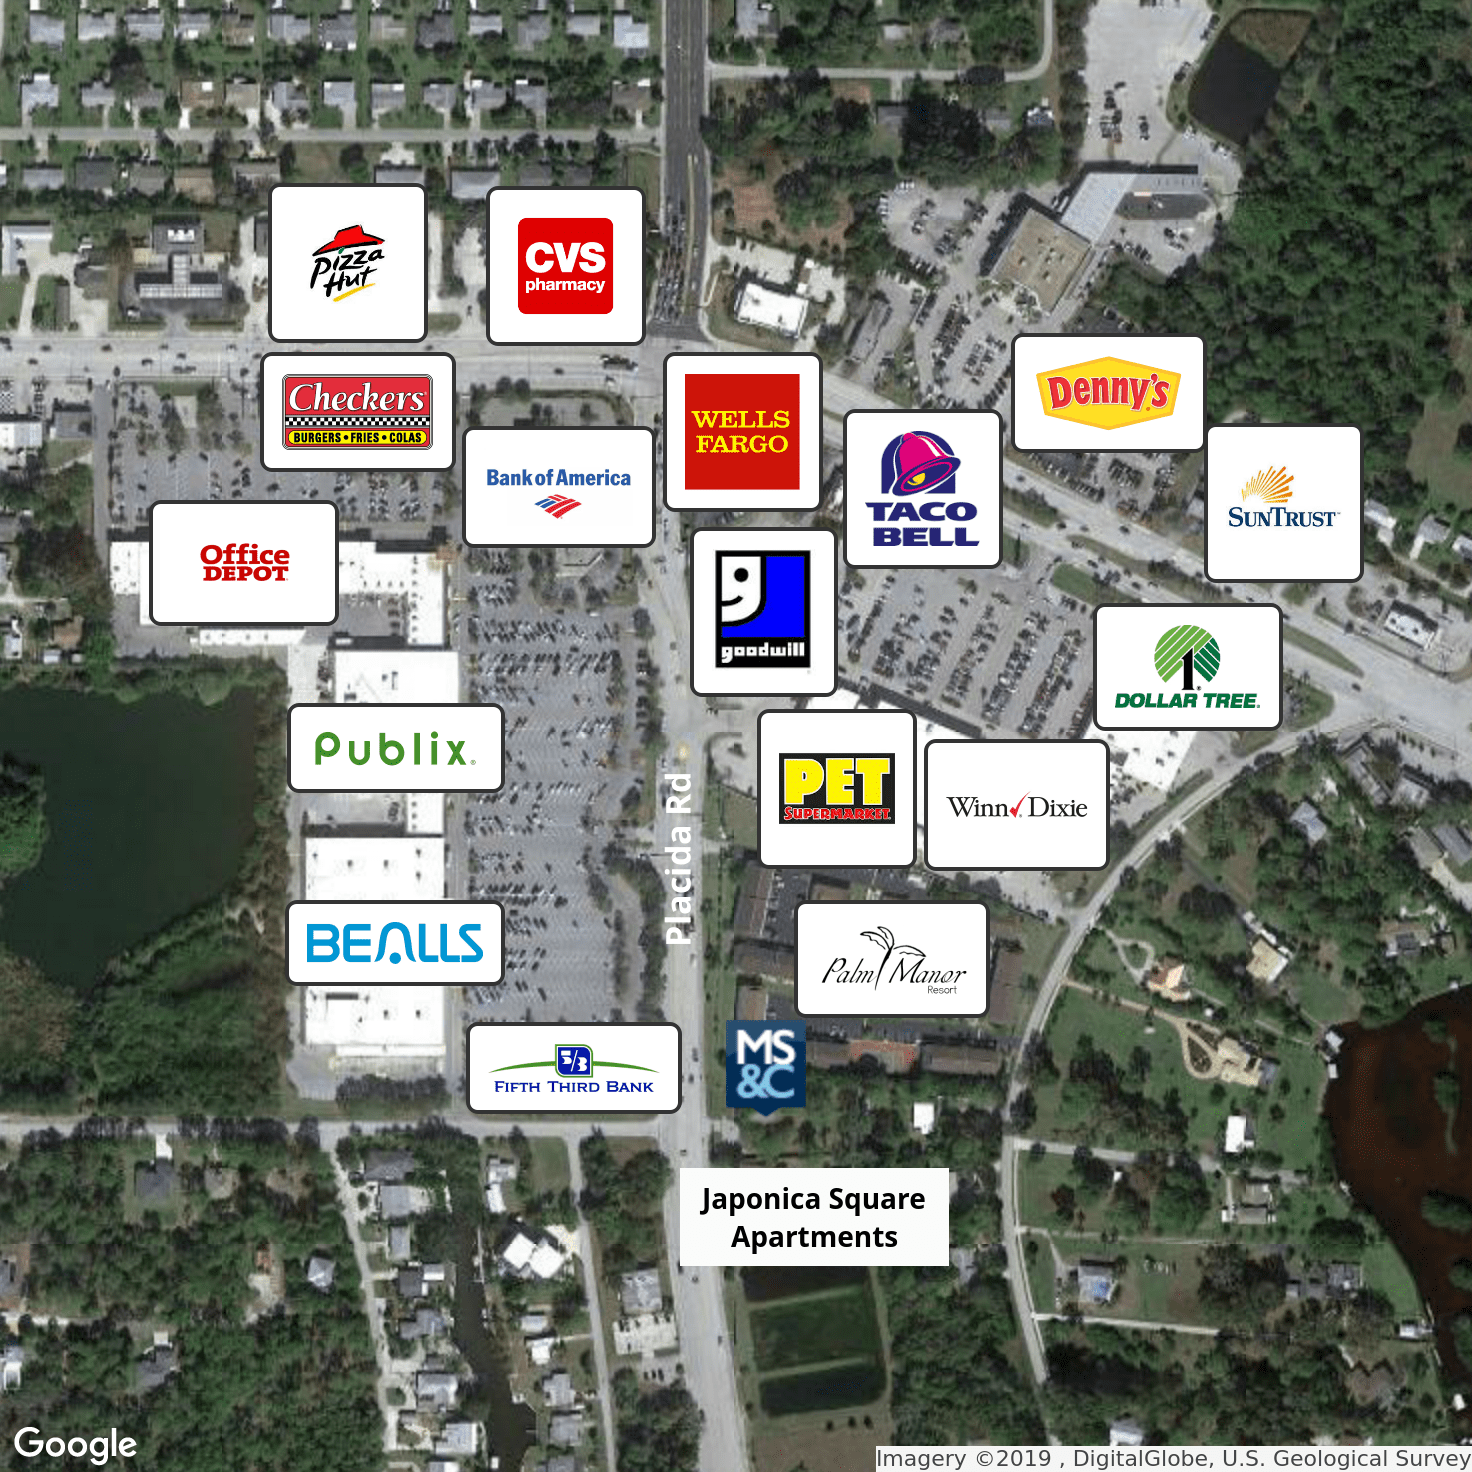 1599 Placida Rd., Englewood, FL 34223 - thumbnail 3 of 3